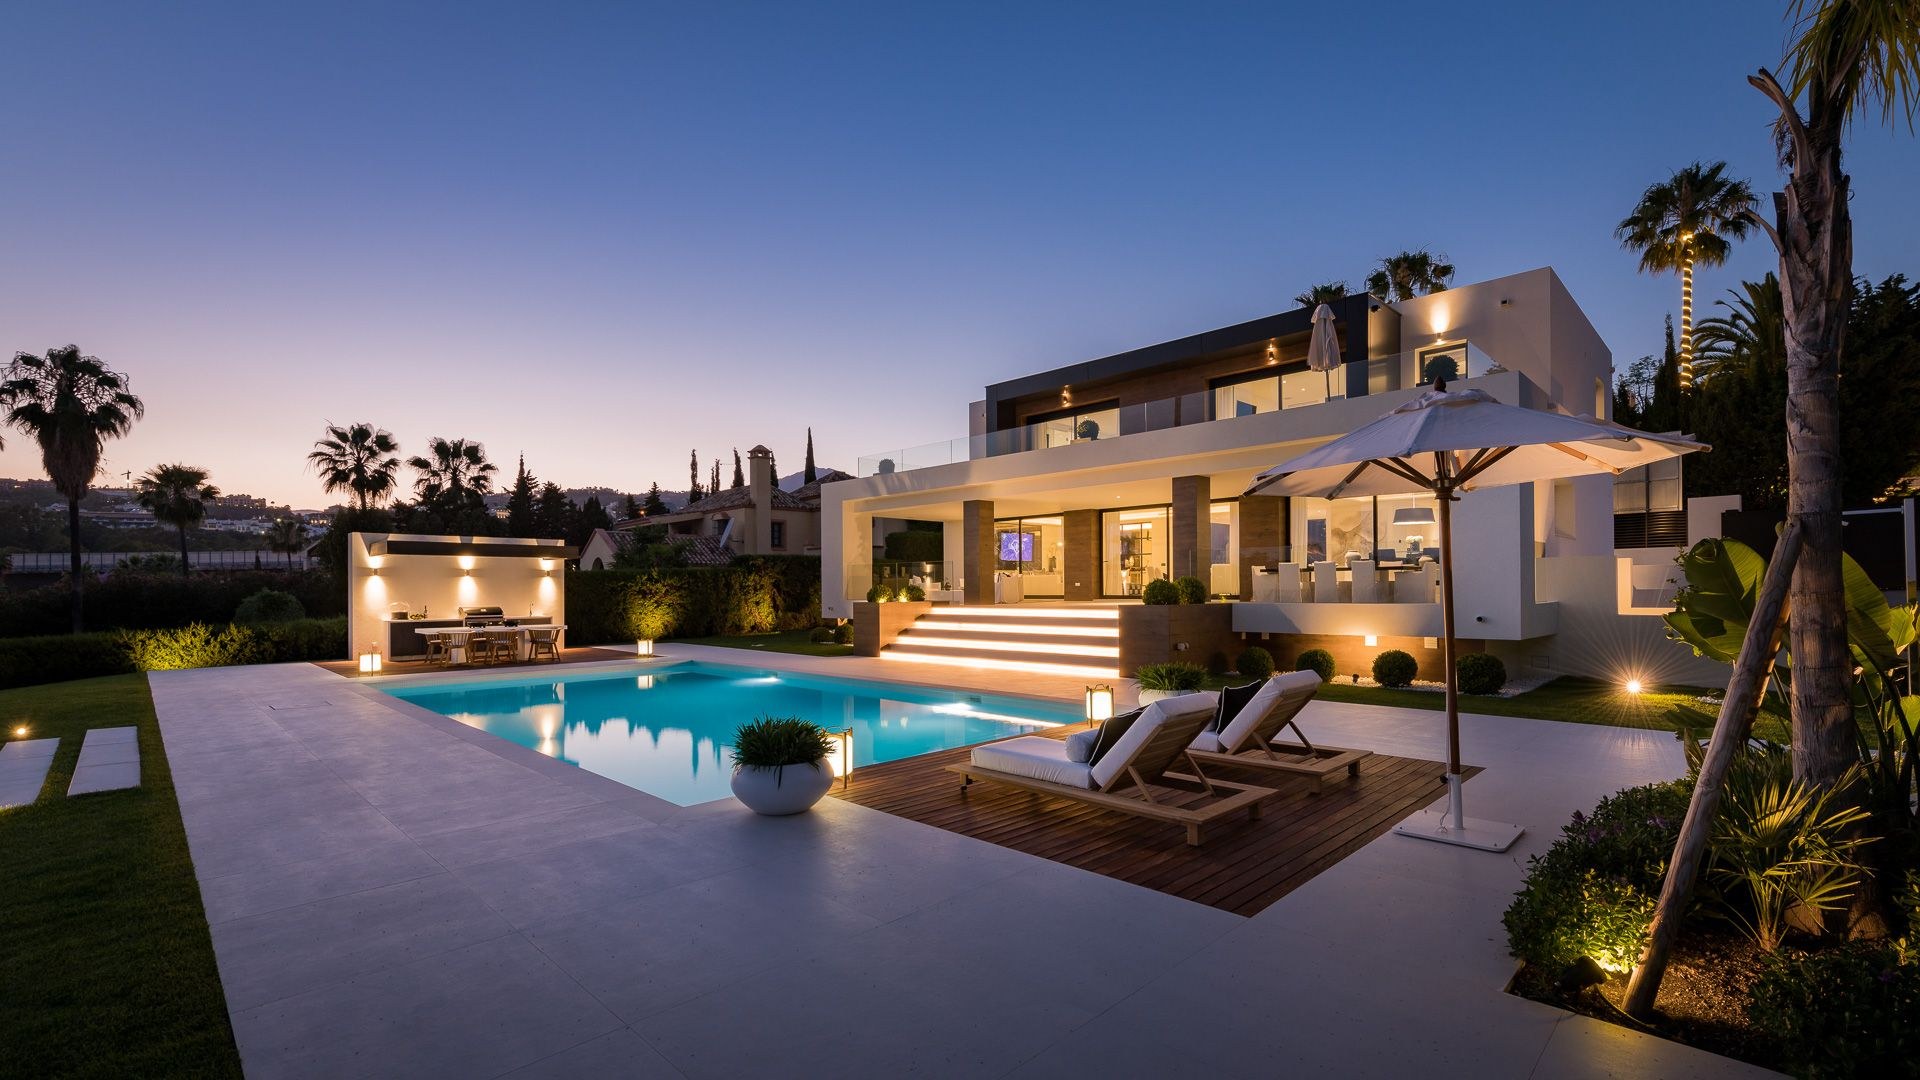 Spectacular modern designer villa in a privileged setting frontline Los Naranjos golf